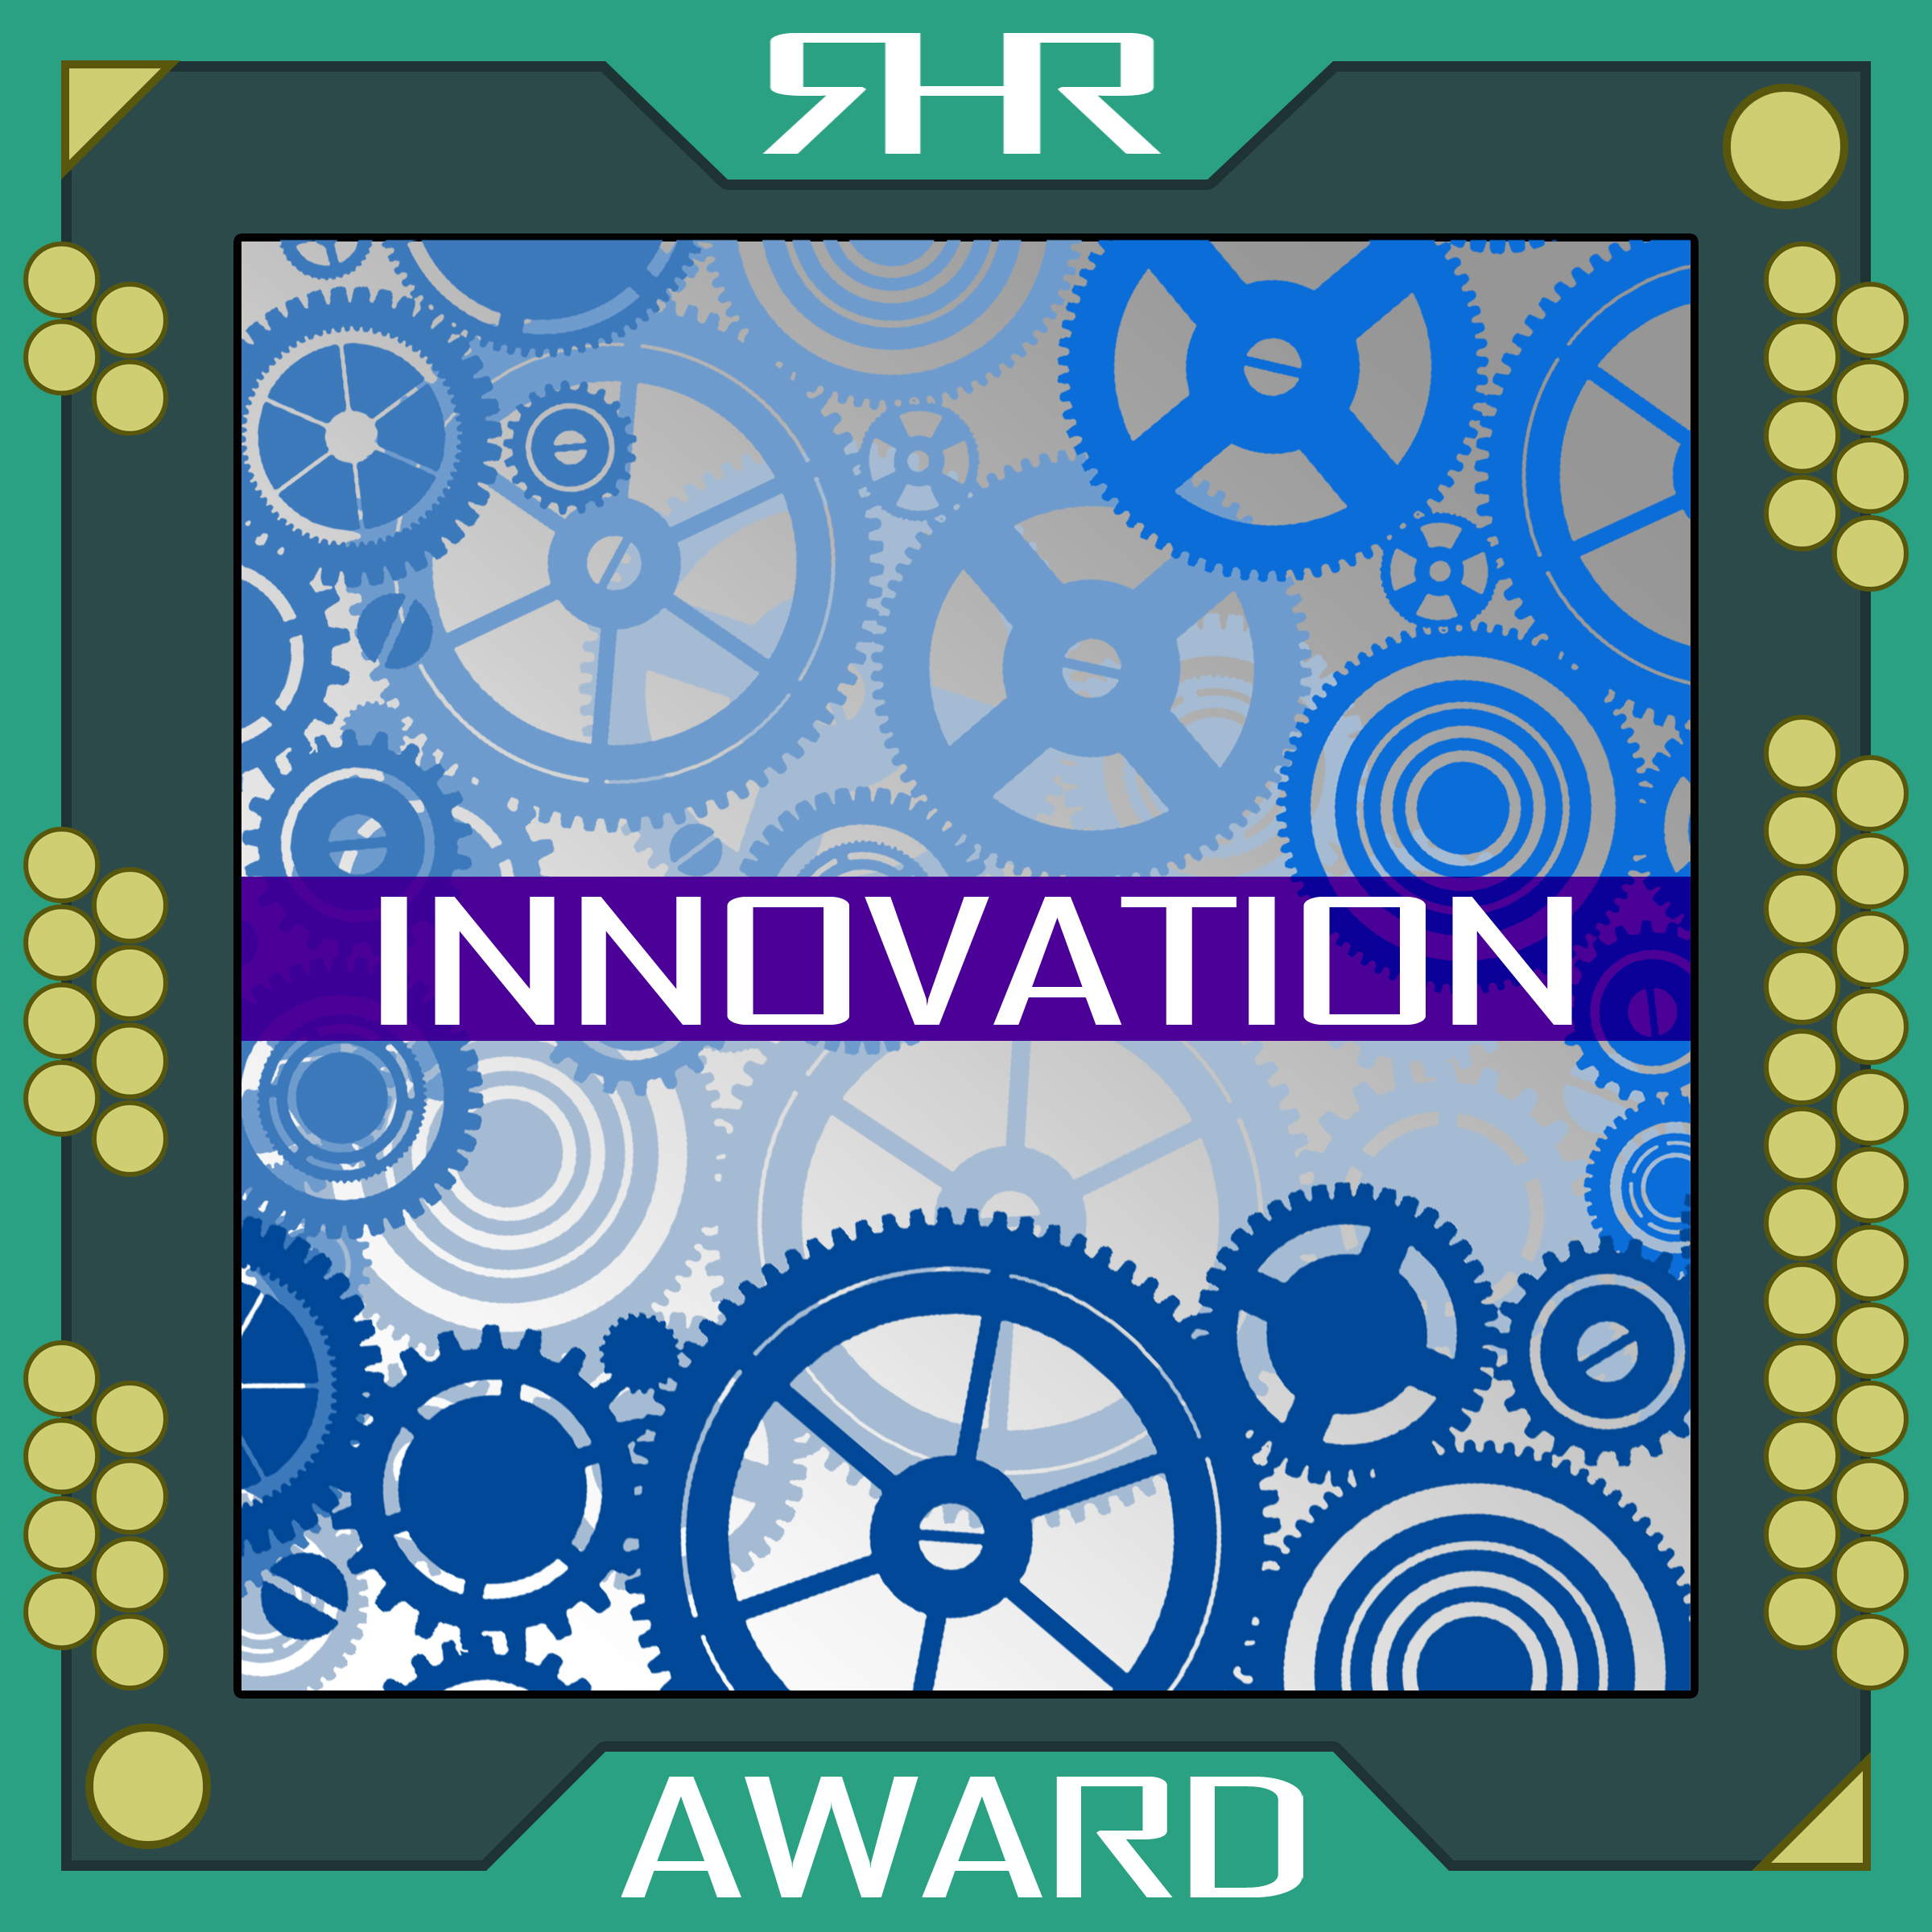 RHR innovation Award - About Us